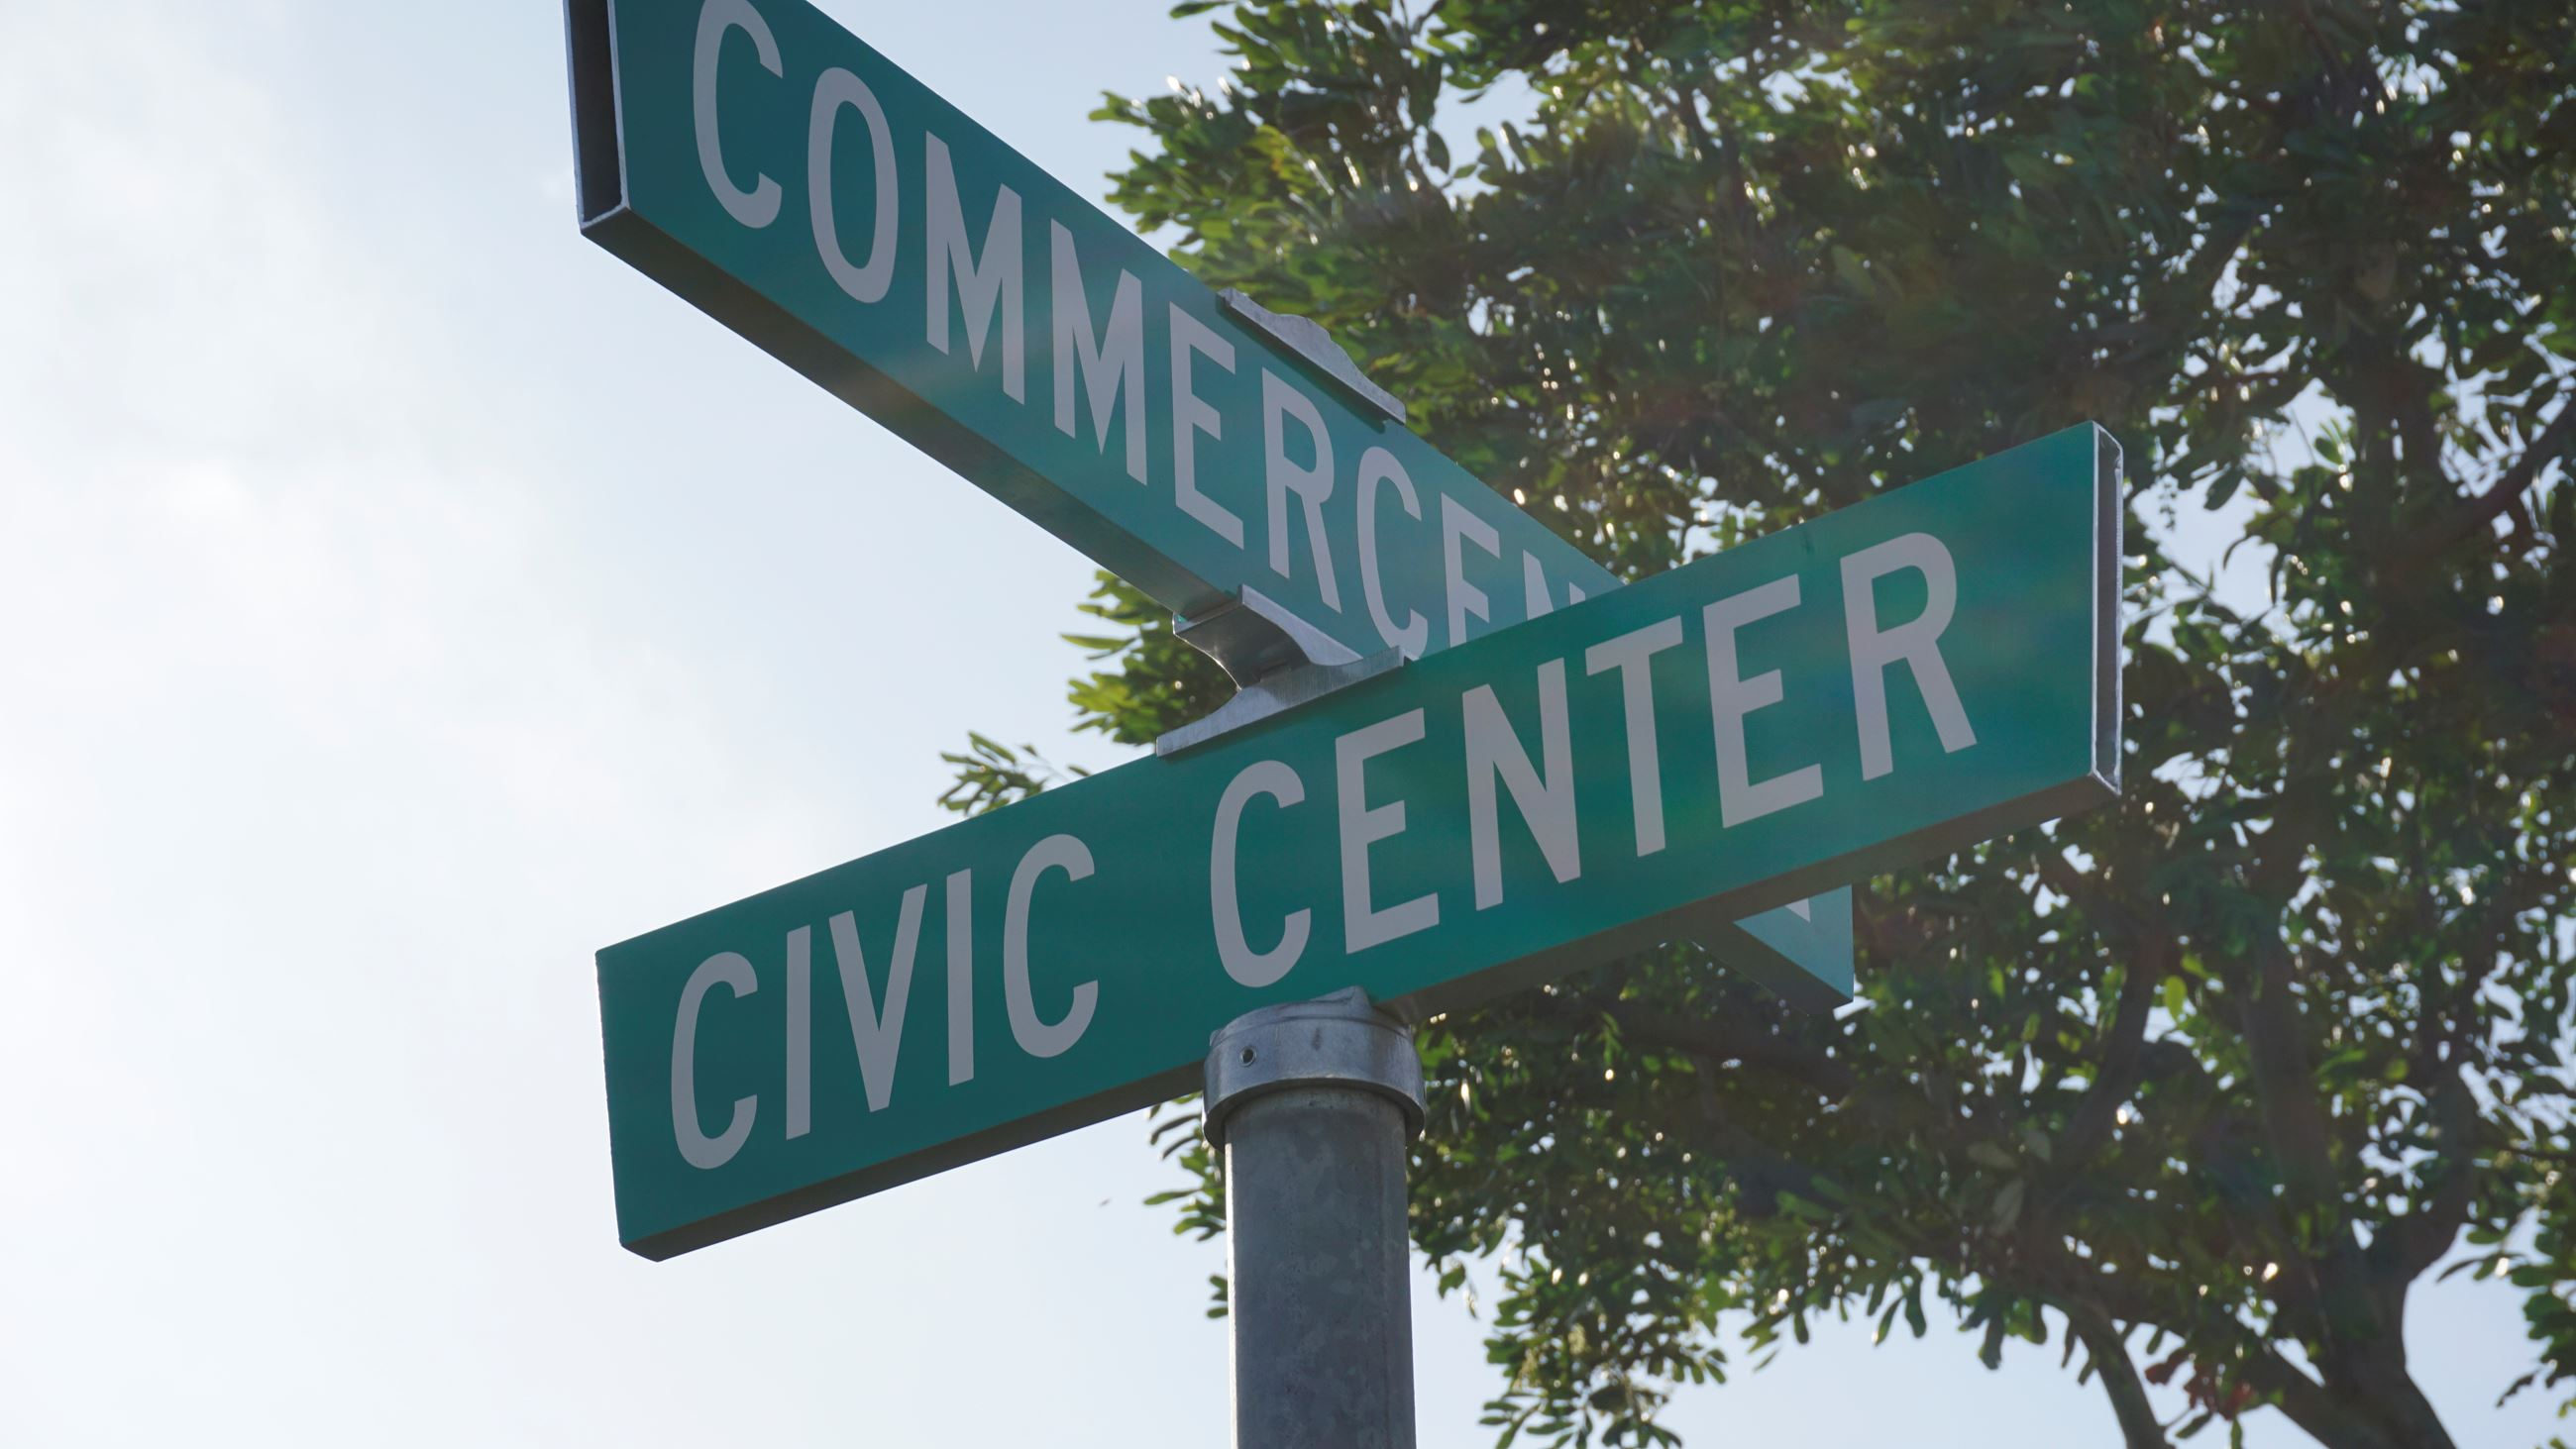 Civic Center Drive Photo